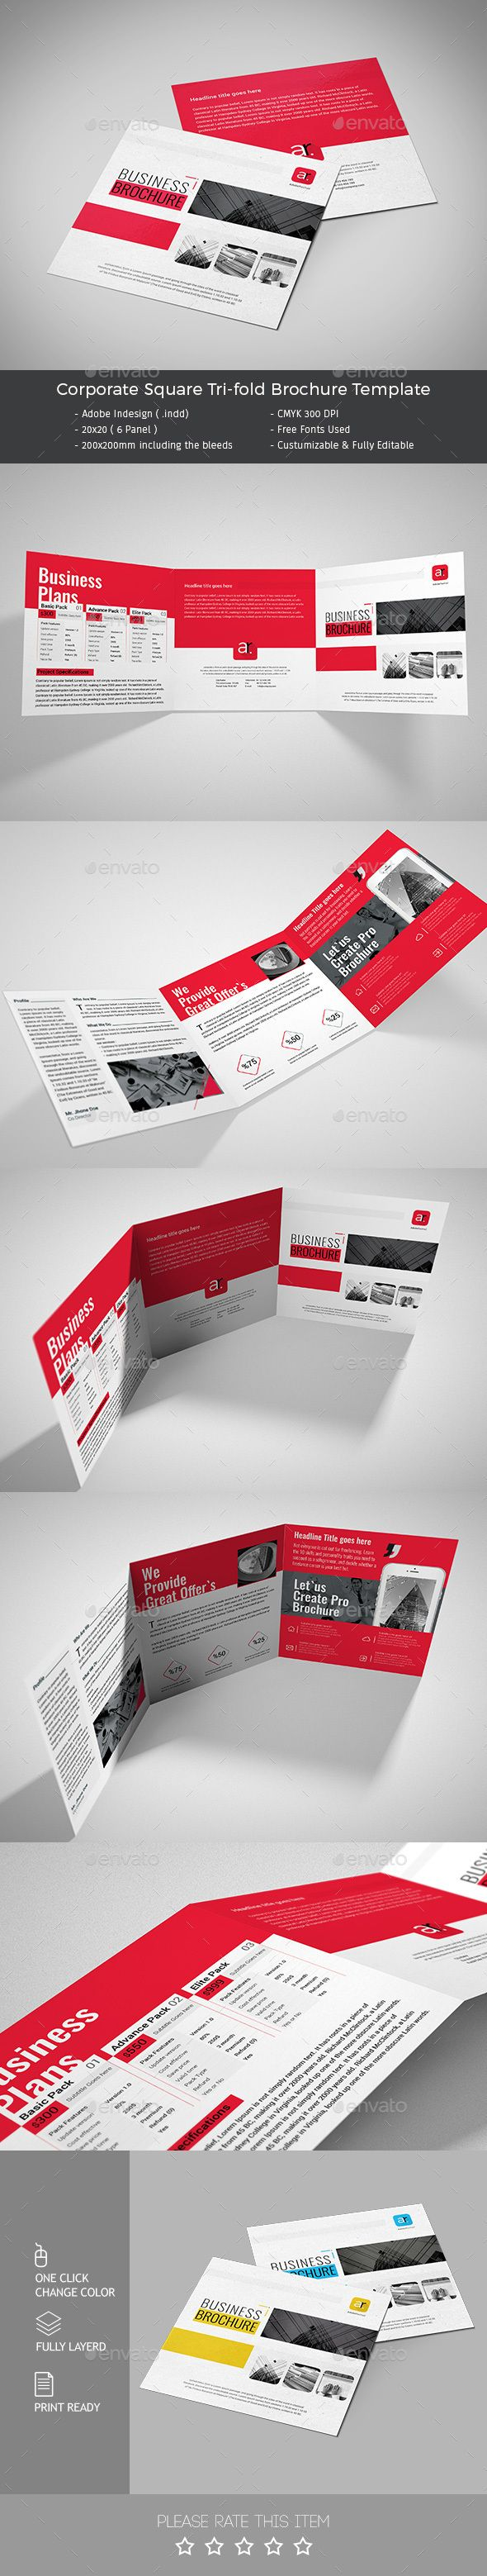 17 Best ideas about Tri Fold Poster on Pinterest | Tri ...